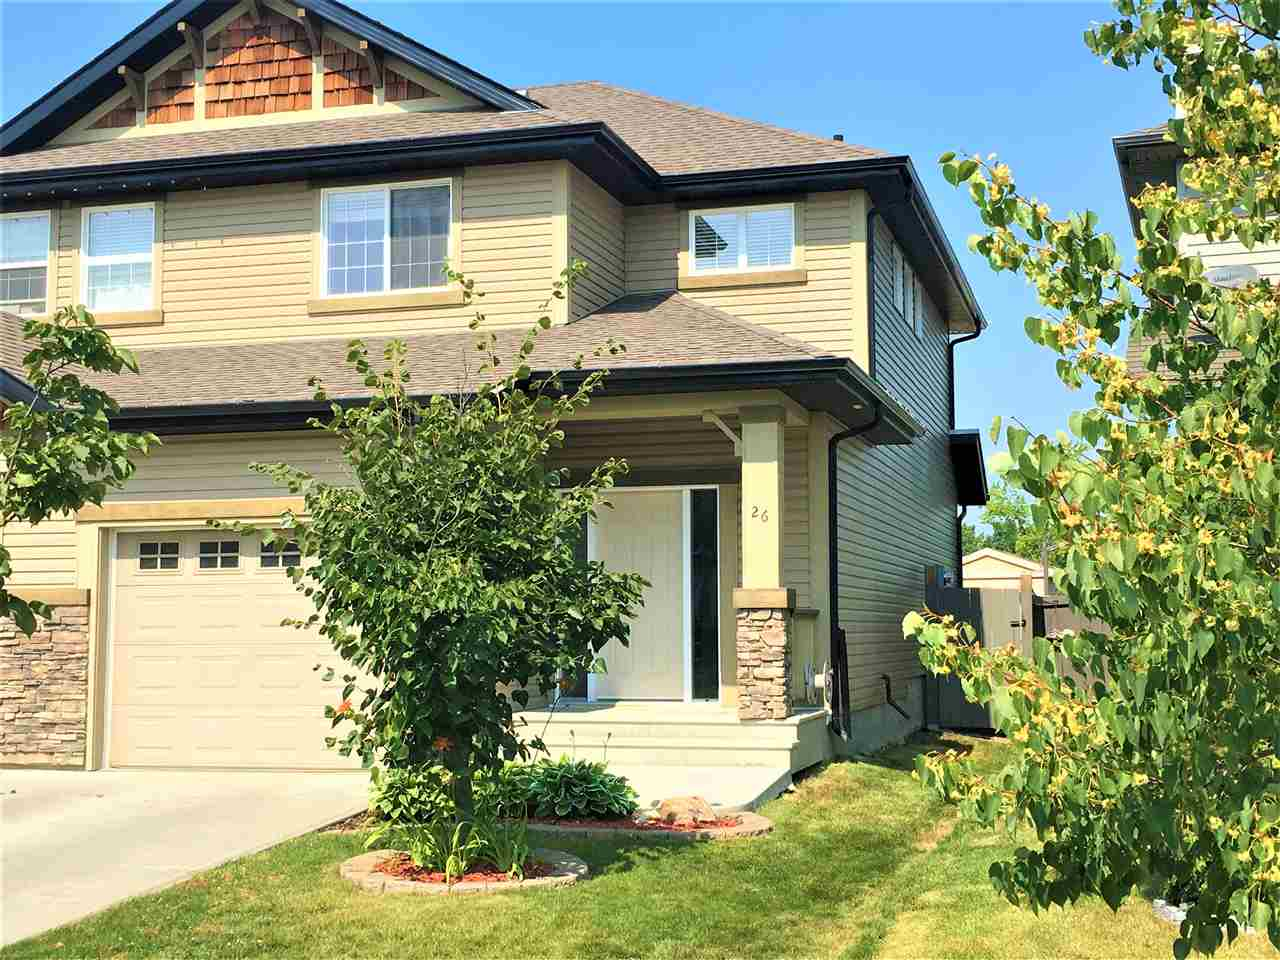 Main Photo: 26 CALVERT: Fort Saskatchewan House Half Duplex for sale : MLS(r) # E4073956